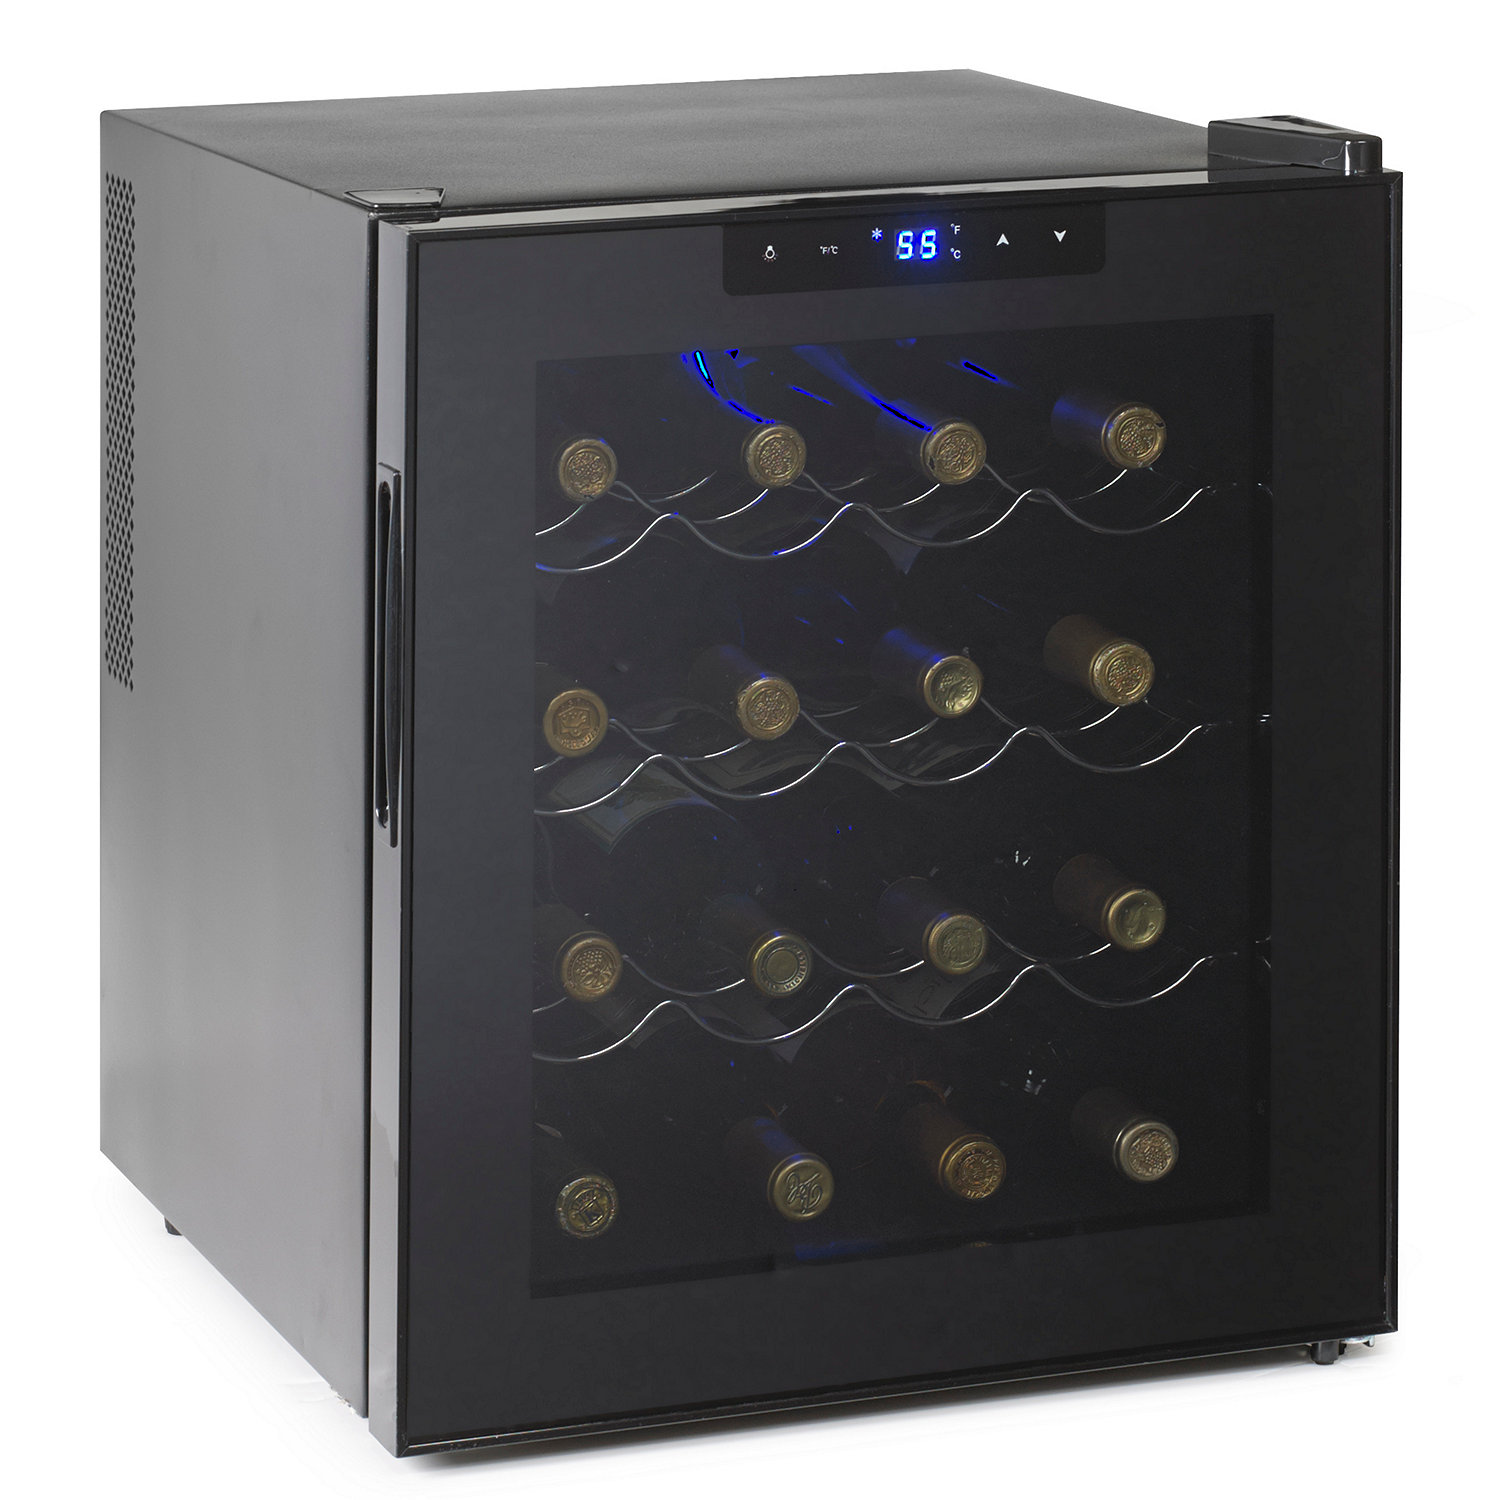 Wine Enthusiast Silent 16 Bottle Touchscreen Refrigerator